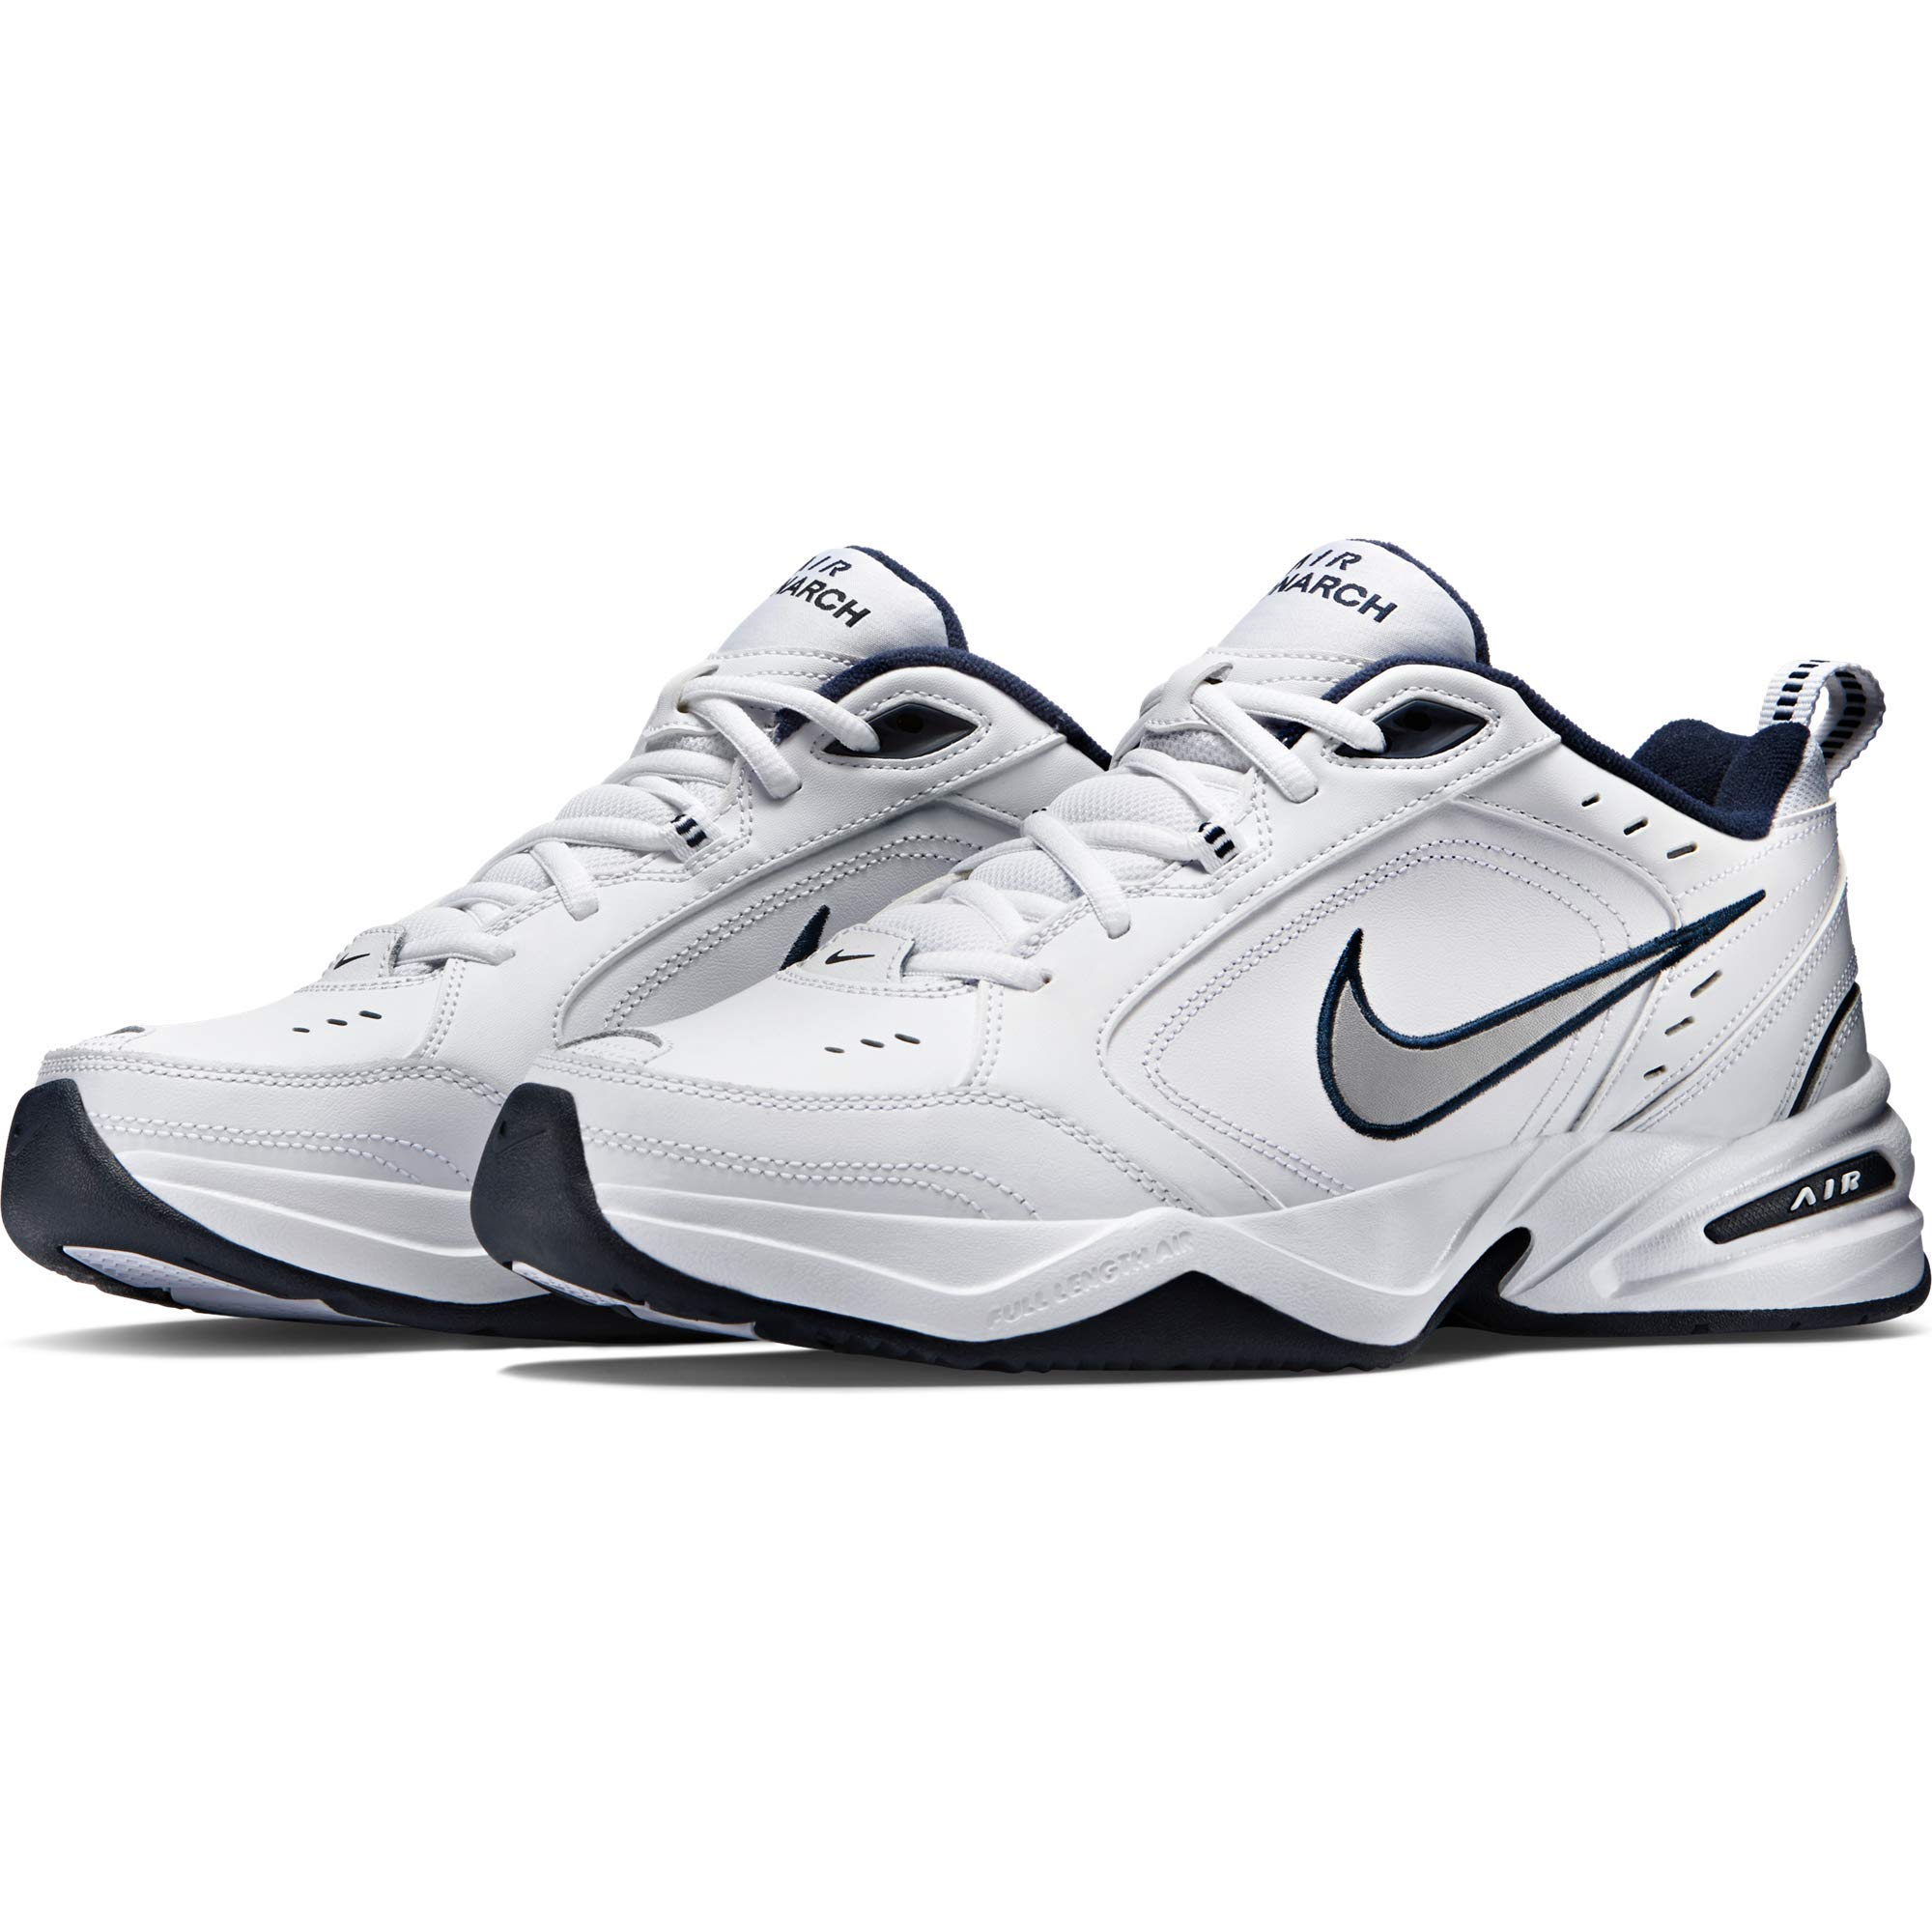 Nike Men's Air Monarch IV Cross Trainer, White/Metallic Silver/Midnight Navy, 6.5 4E US